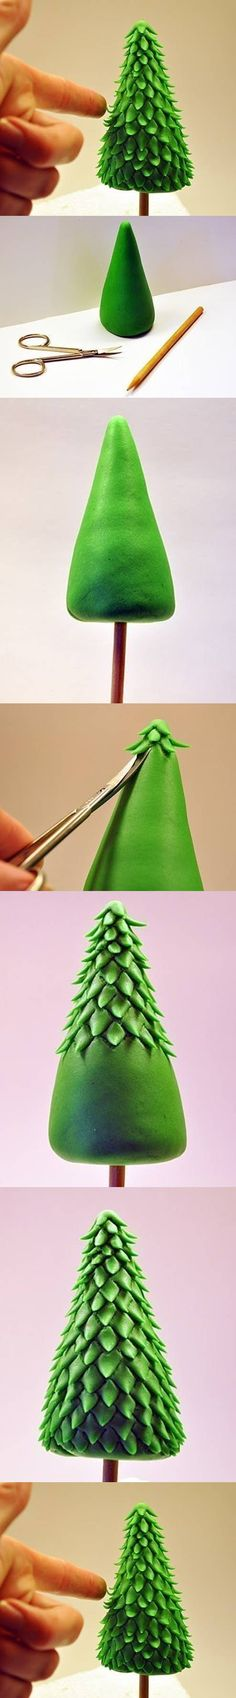 en pâte d'amande ! DIY Clay Christmas Tree